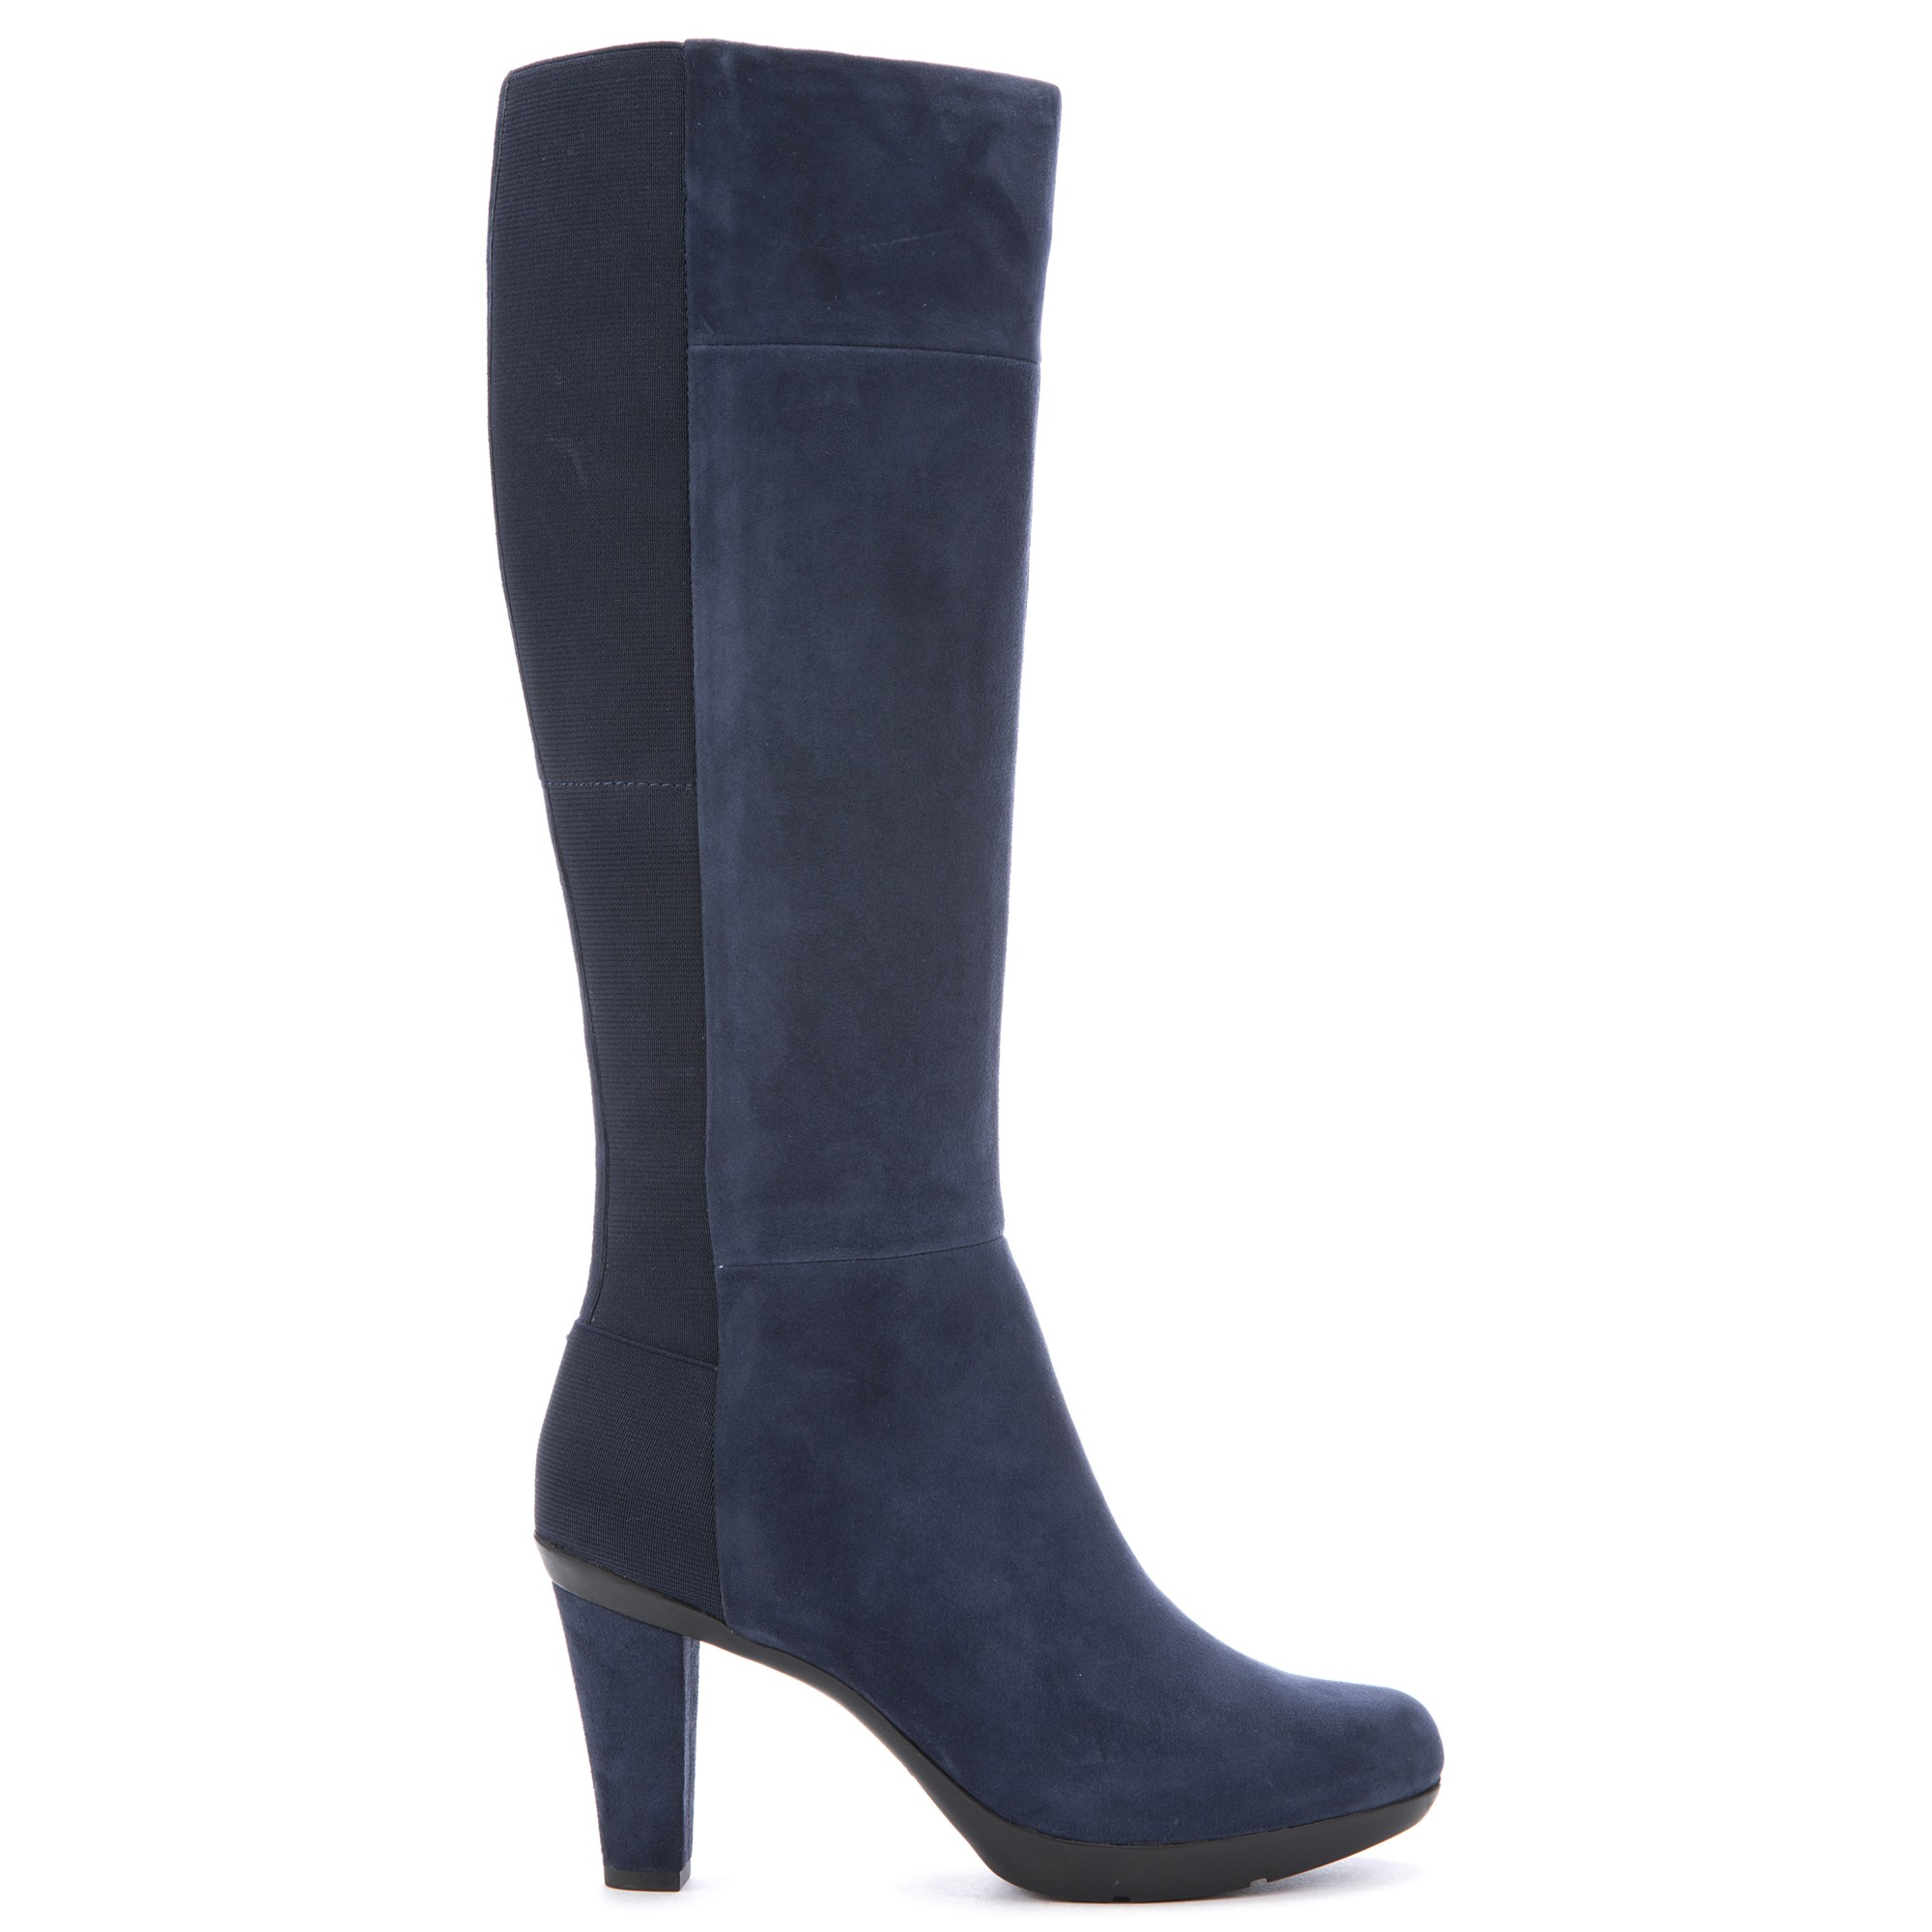 Geox Inspiration High Heeled Knee High Boots in Navy Suede (Blue)